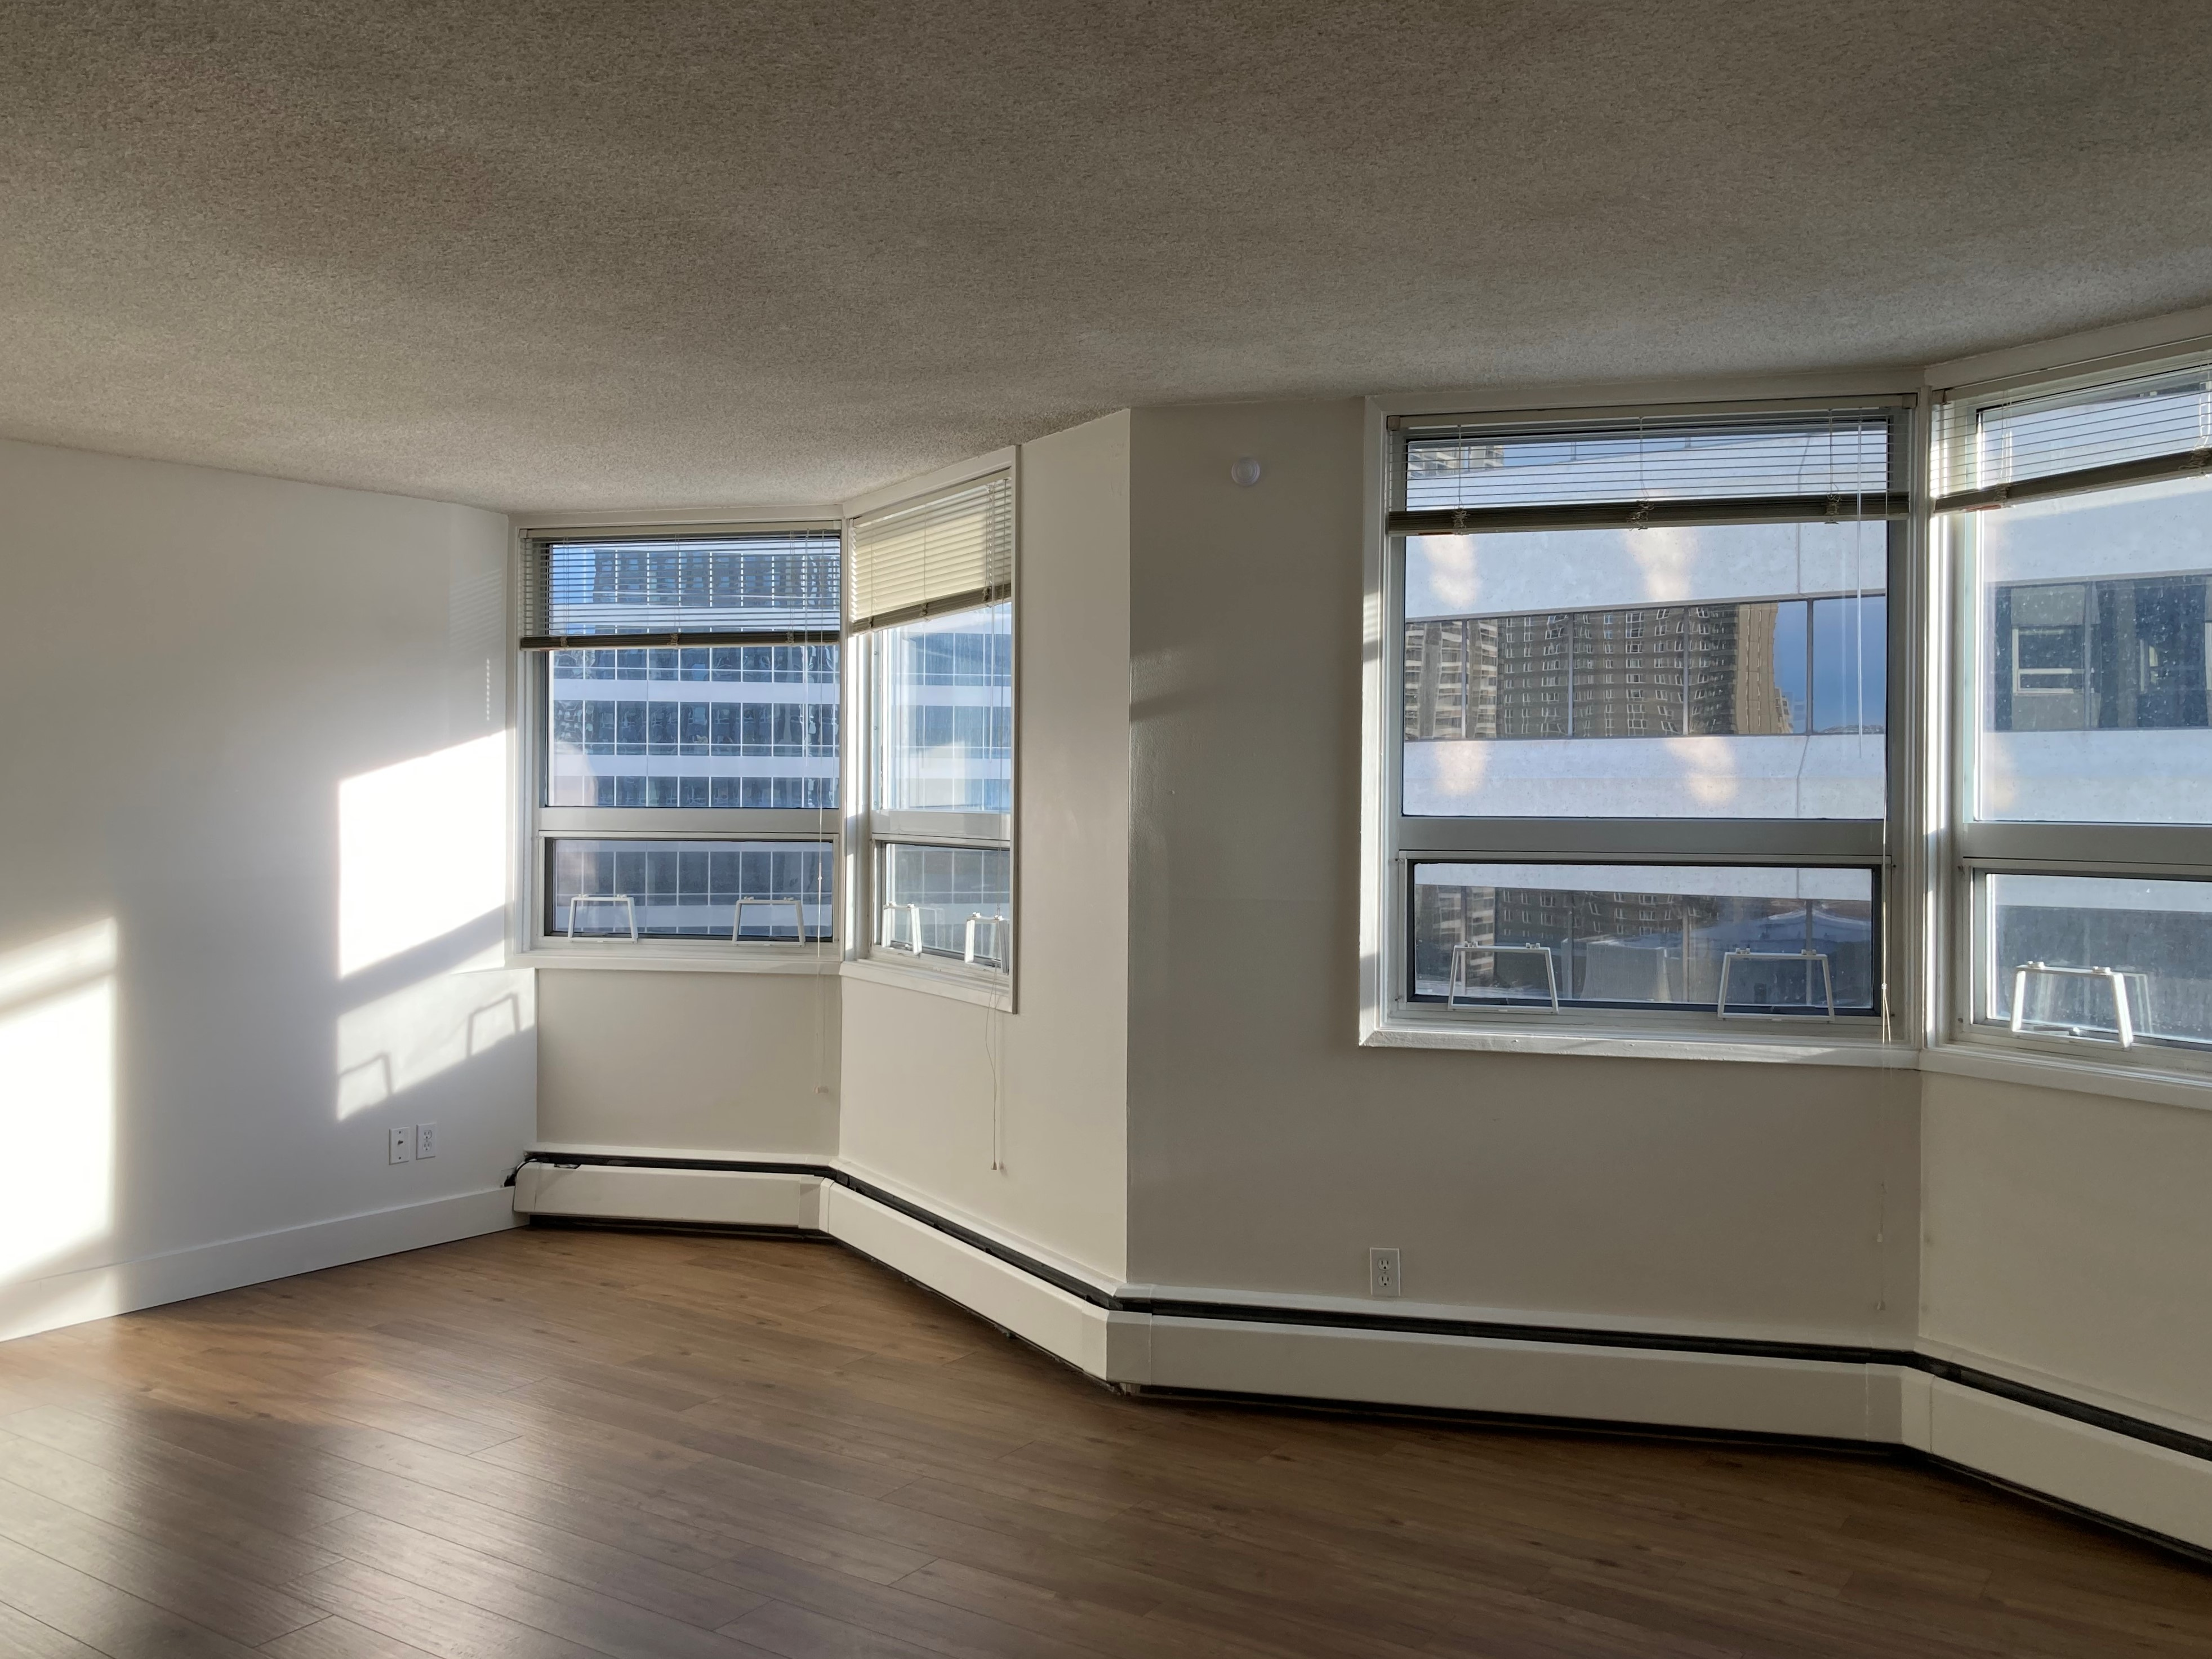 825 - 8th Ave S.W., Calgary, AB - 1,238 CAD/ month